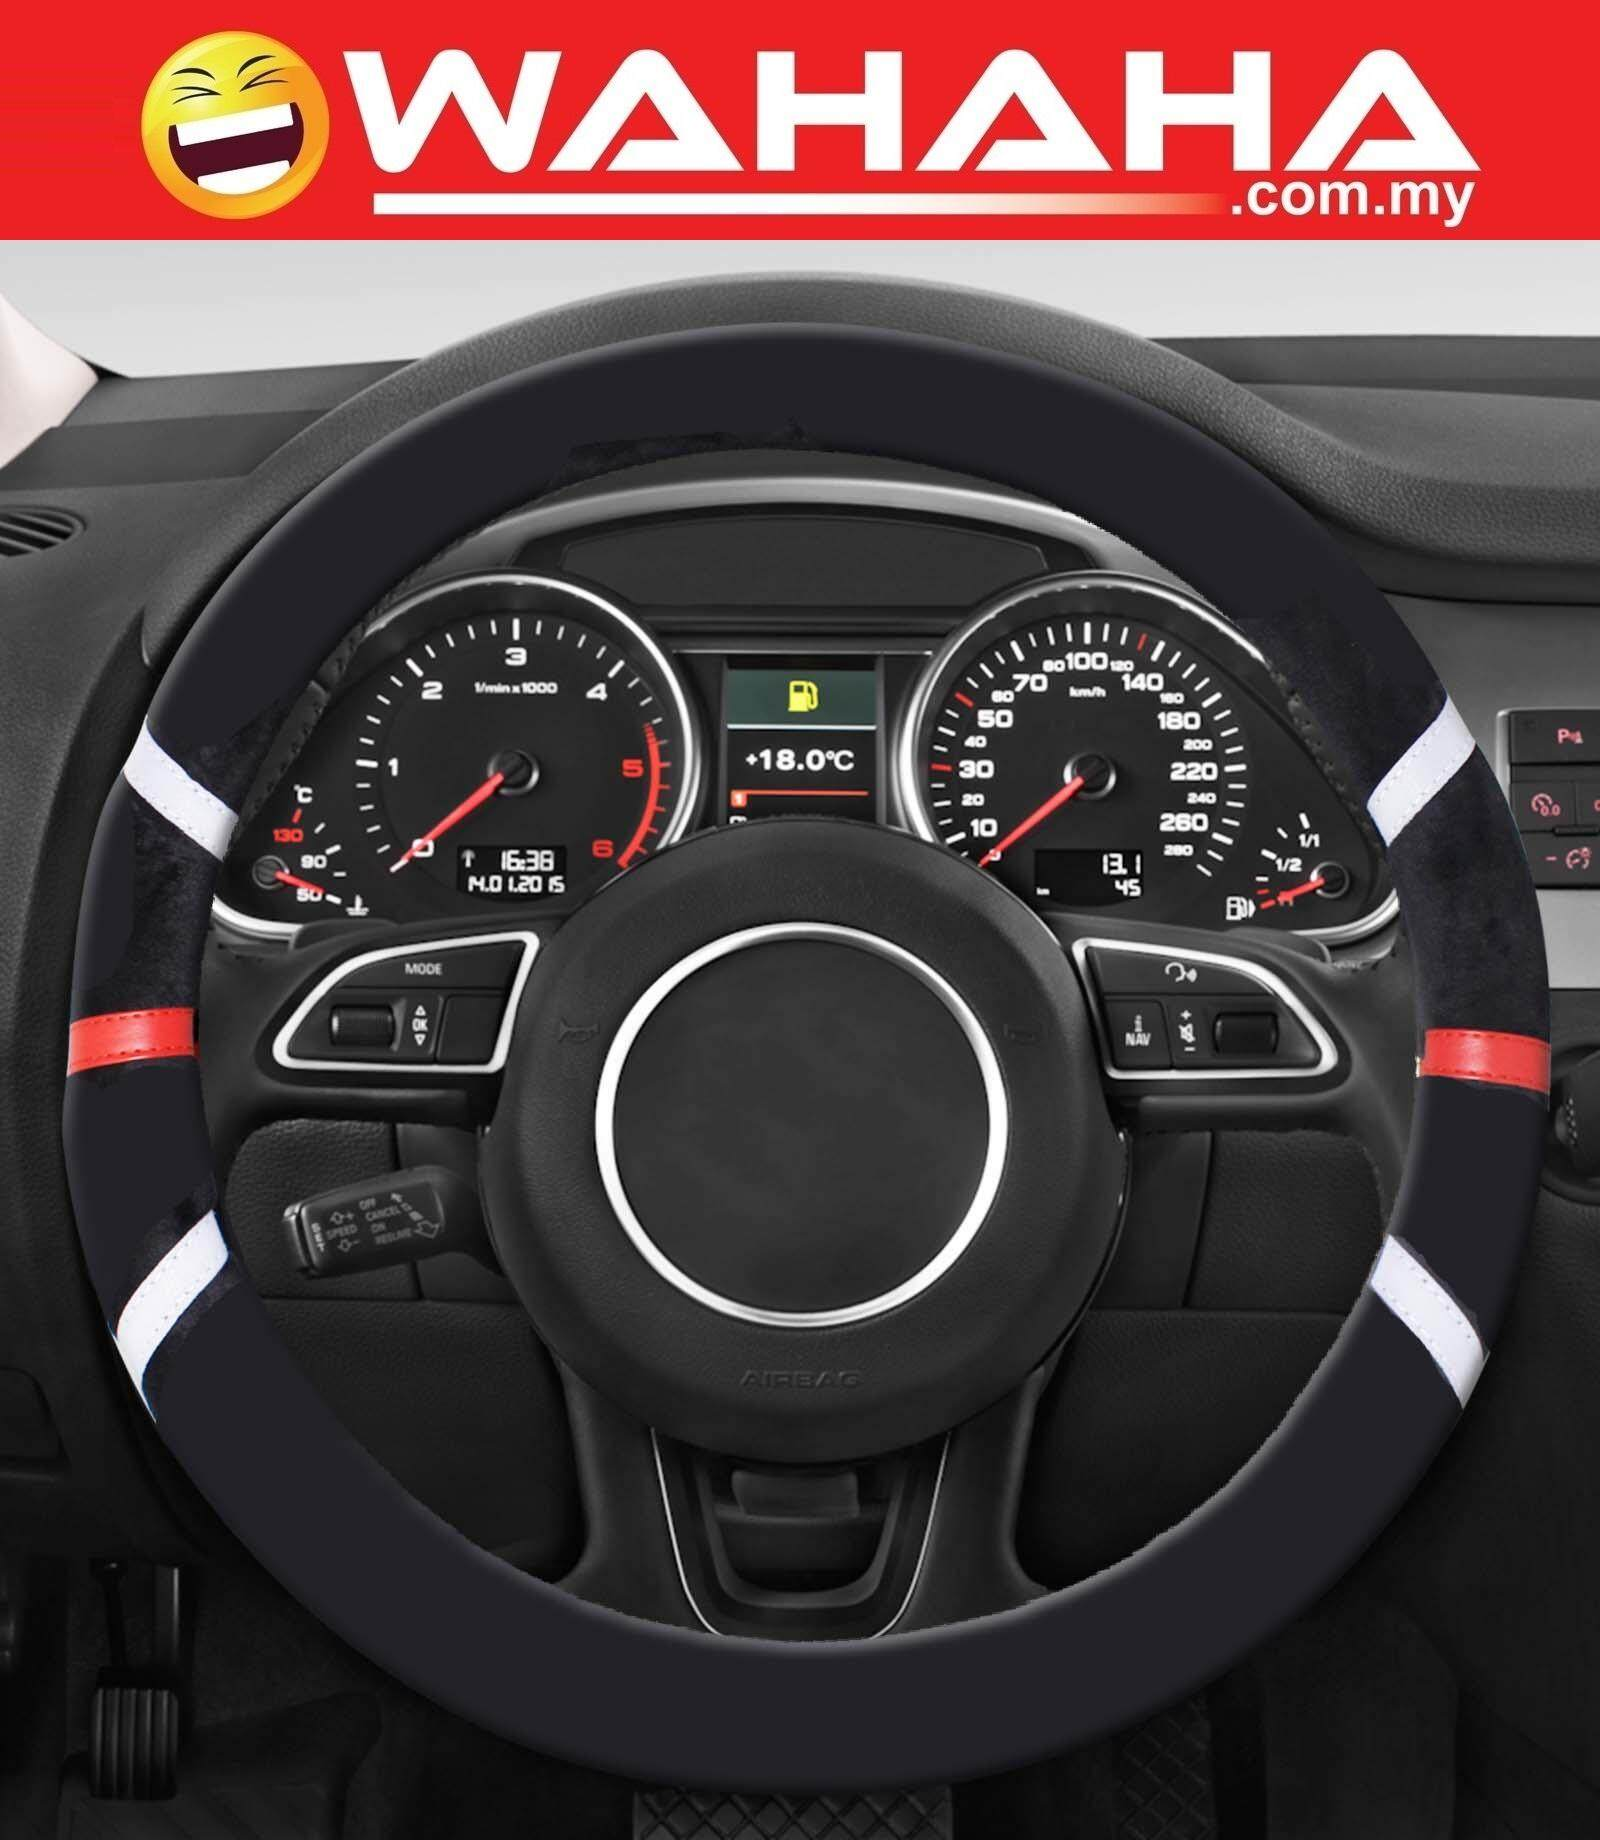 Brand New Universal Steering Wheel Cover DIY Soft Stitching Leather Suede Cover 71313 Black